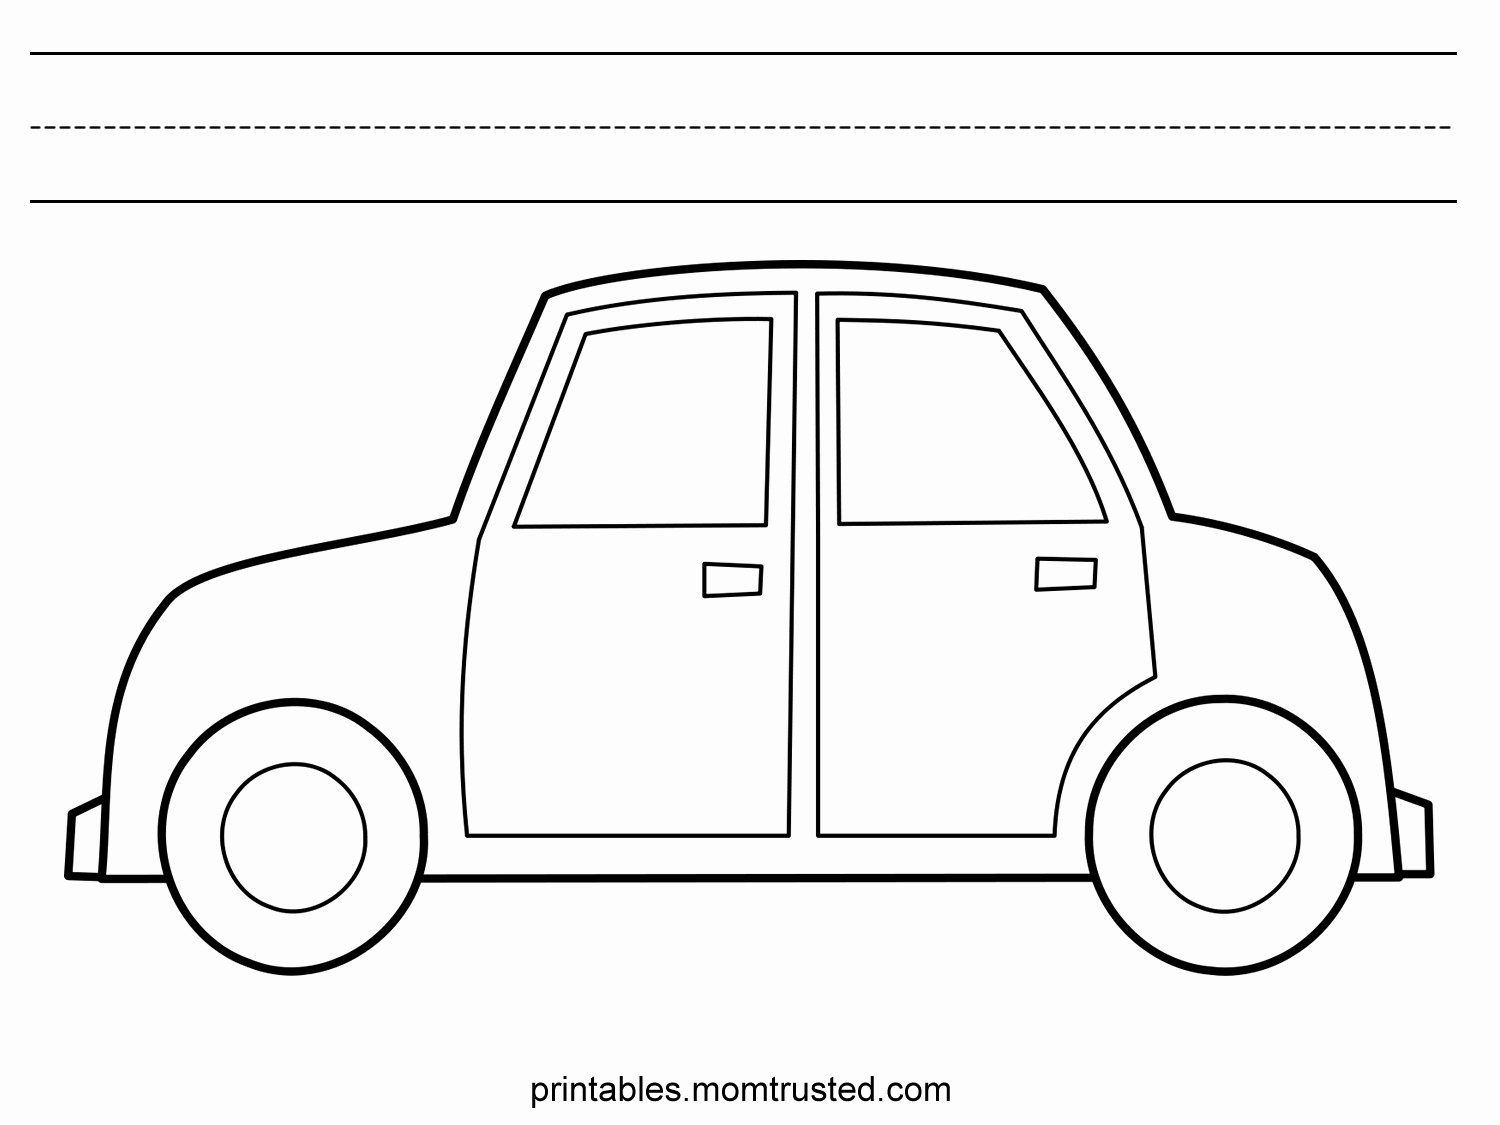 Easy Car Coloring Pages